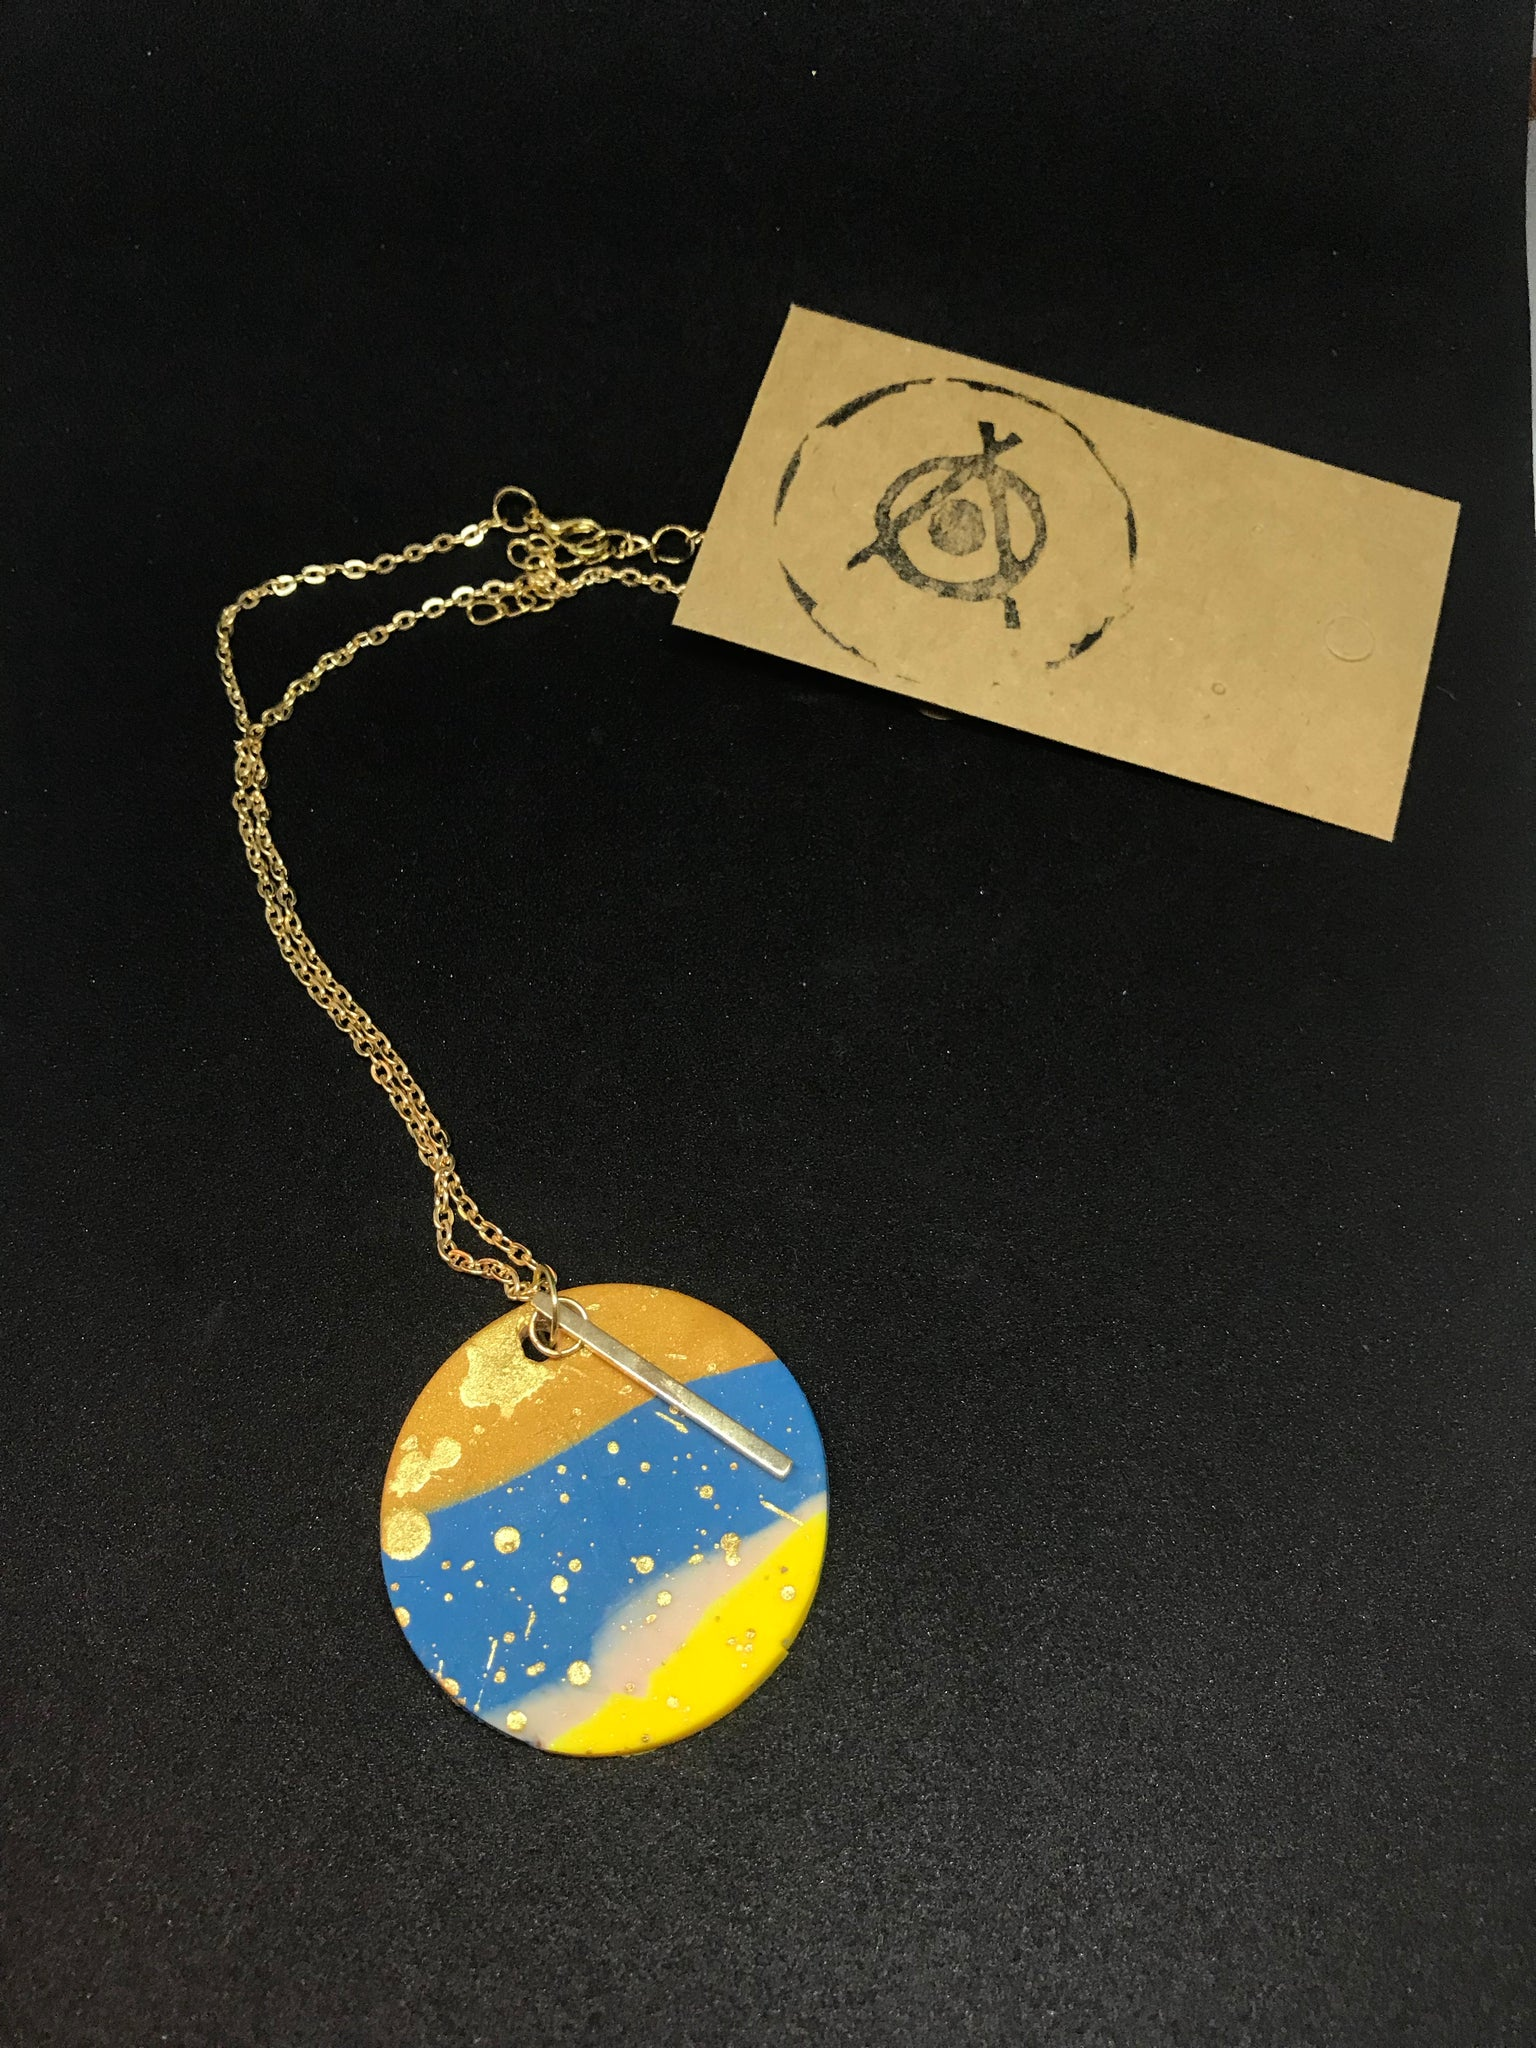 Sunset pendant necklace